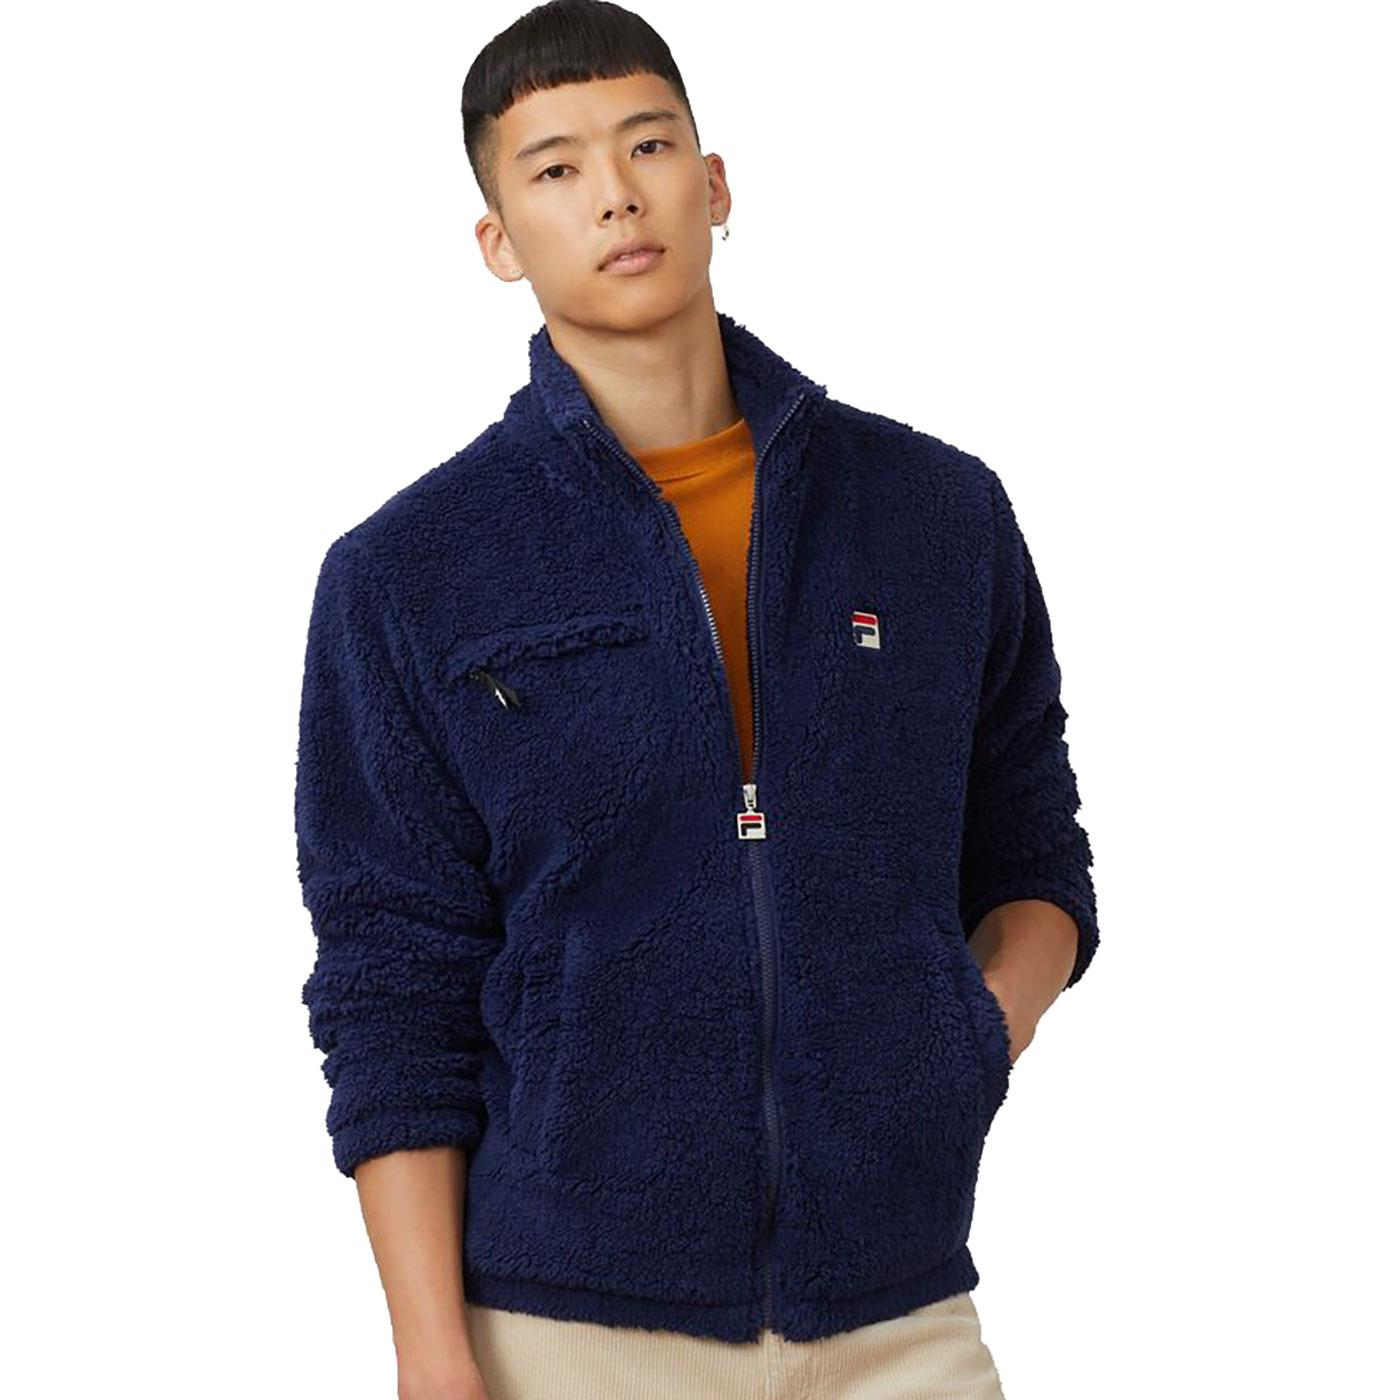 Bridgewater FILA VINTAGE Mens Zip Up Fleece Jacket